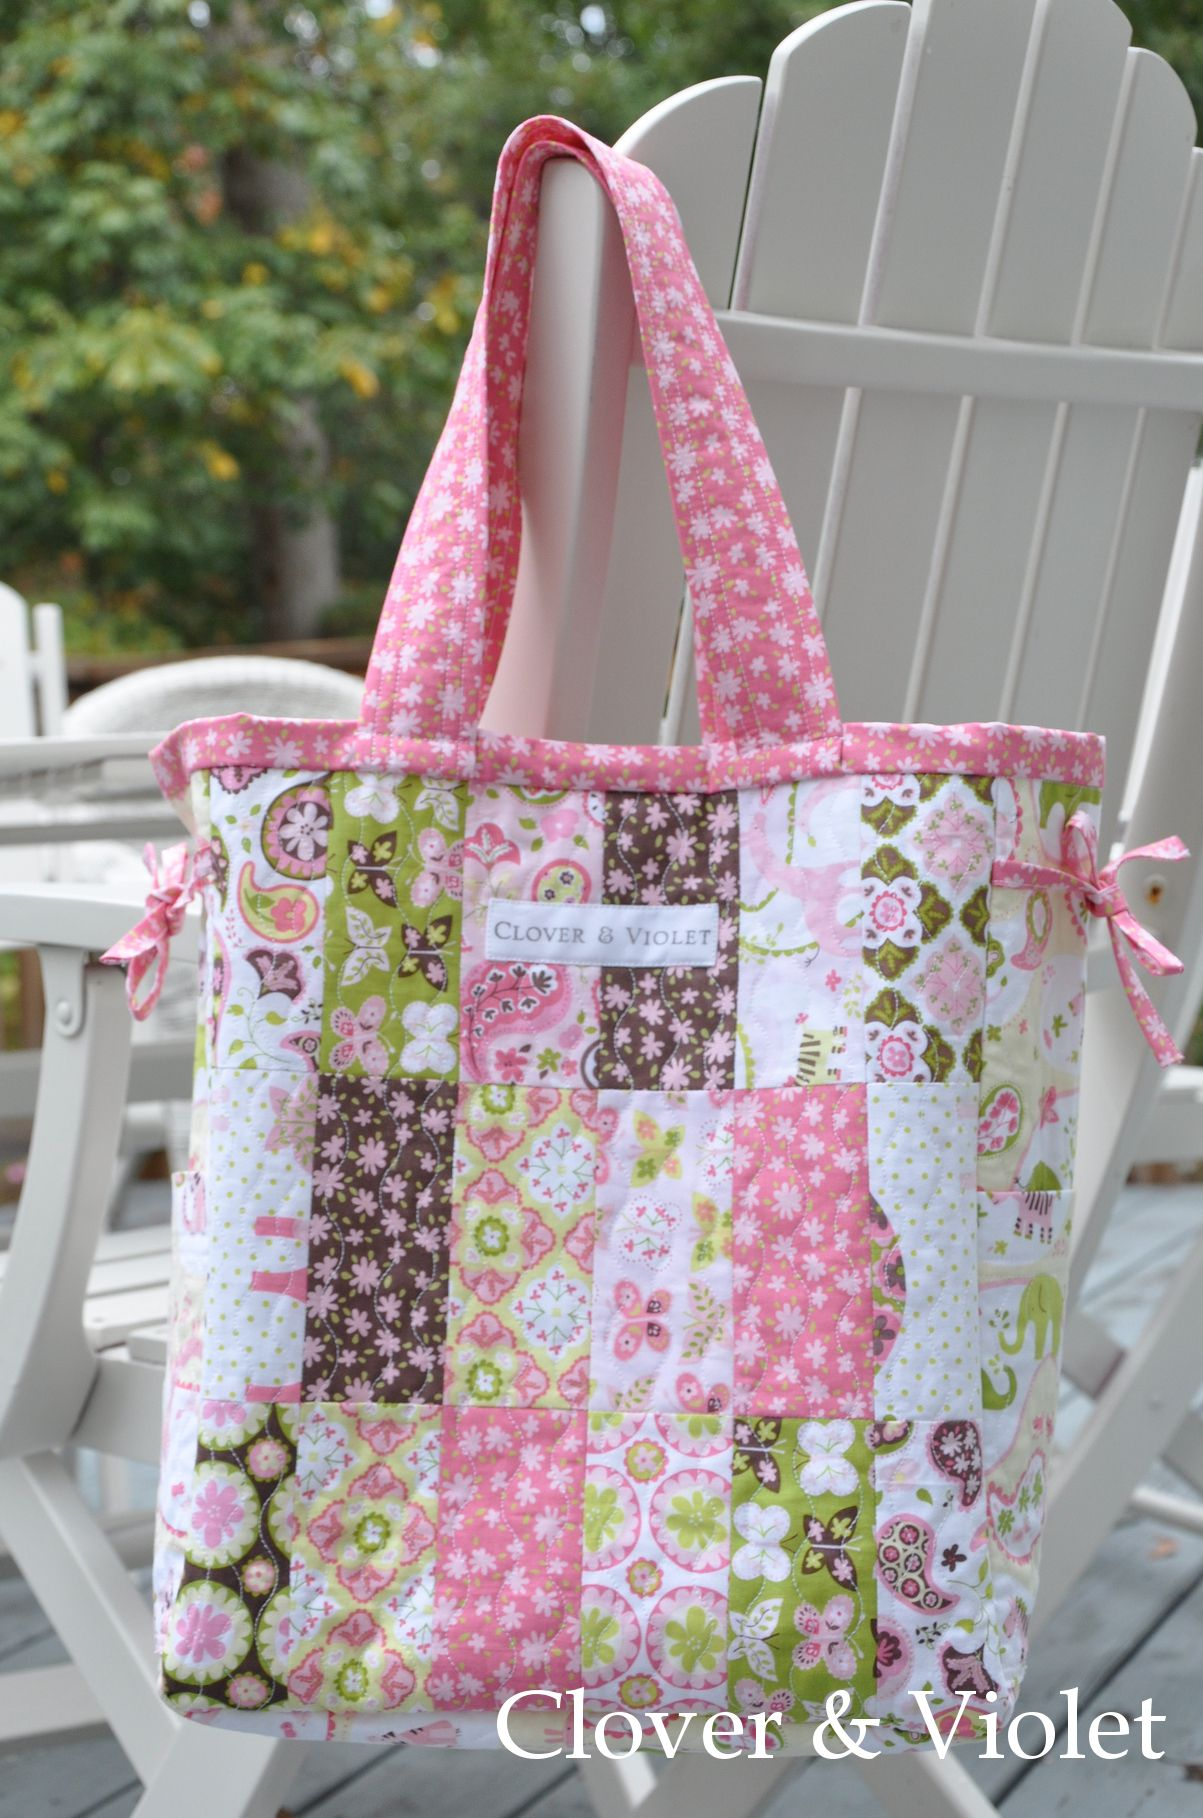 The Madeline bag made with Animal Parade fabric.